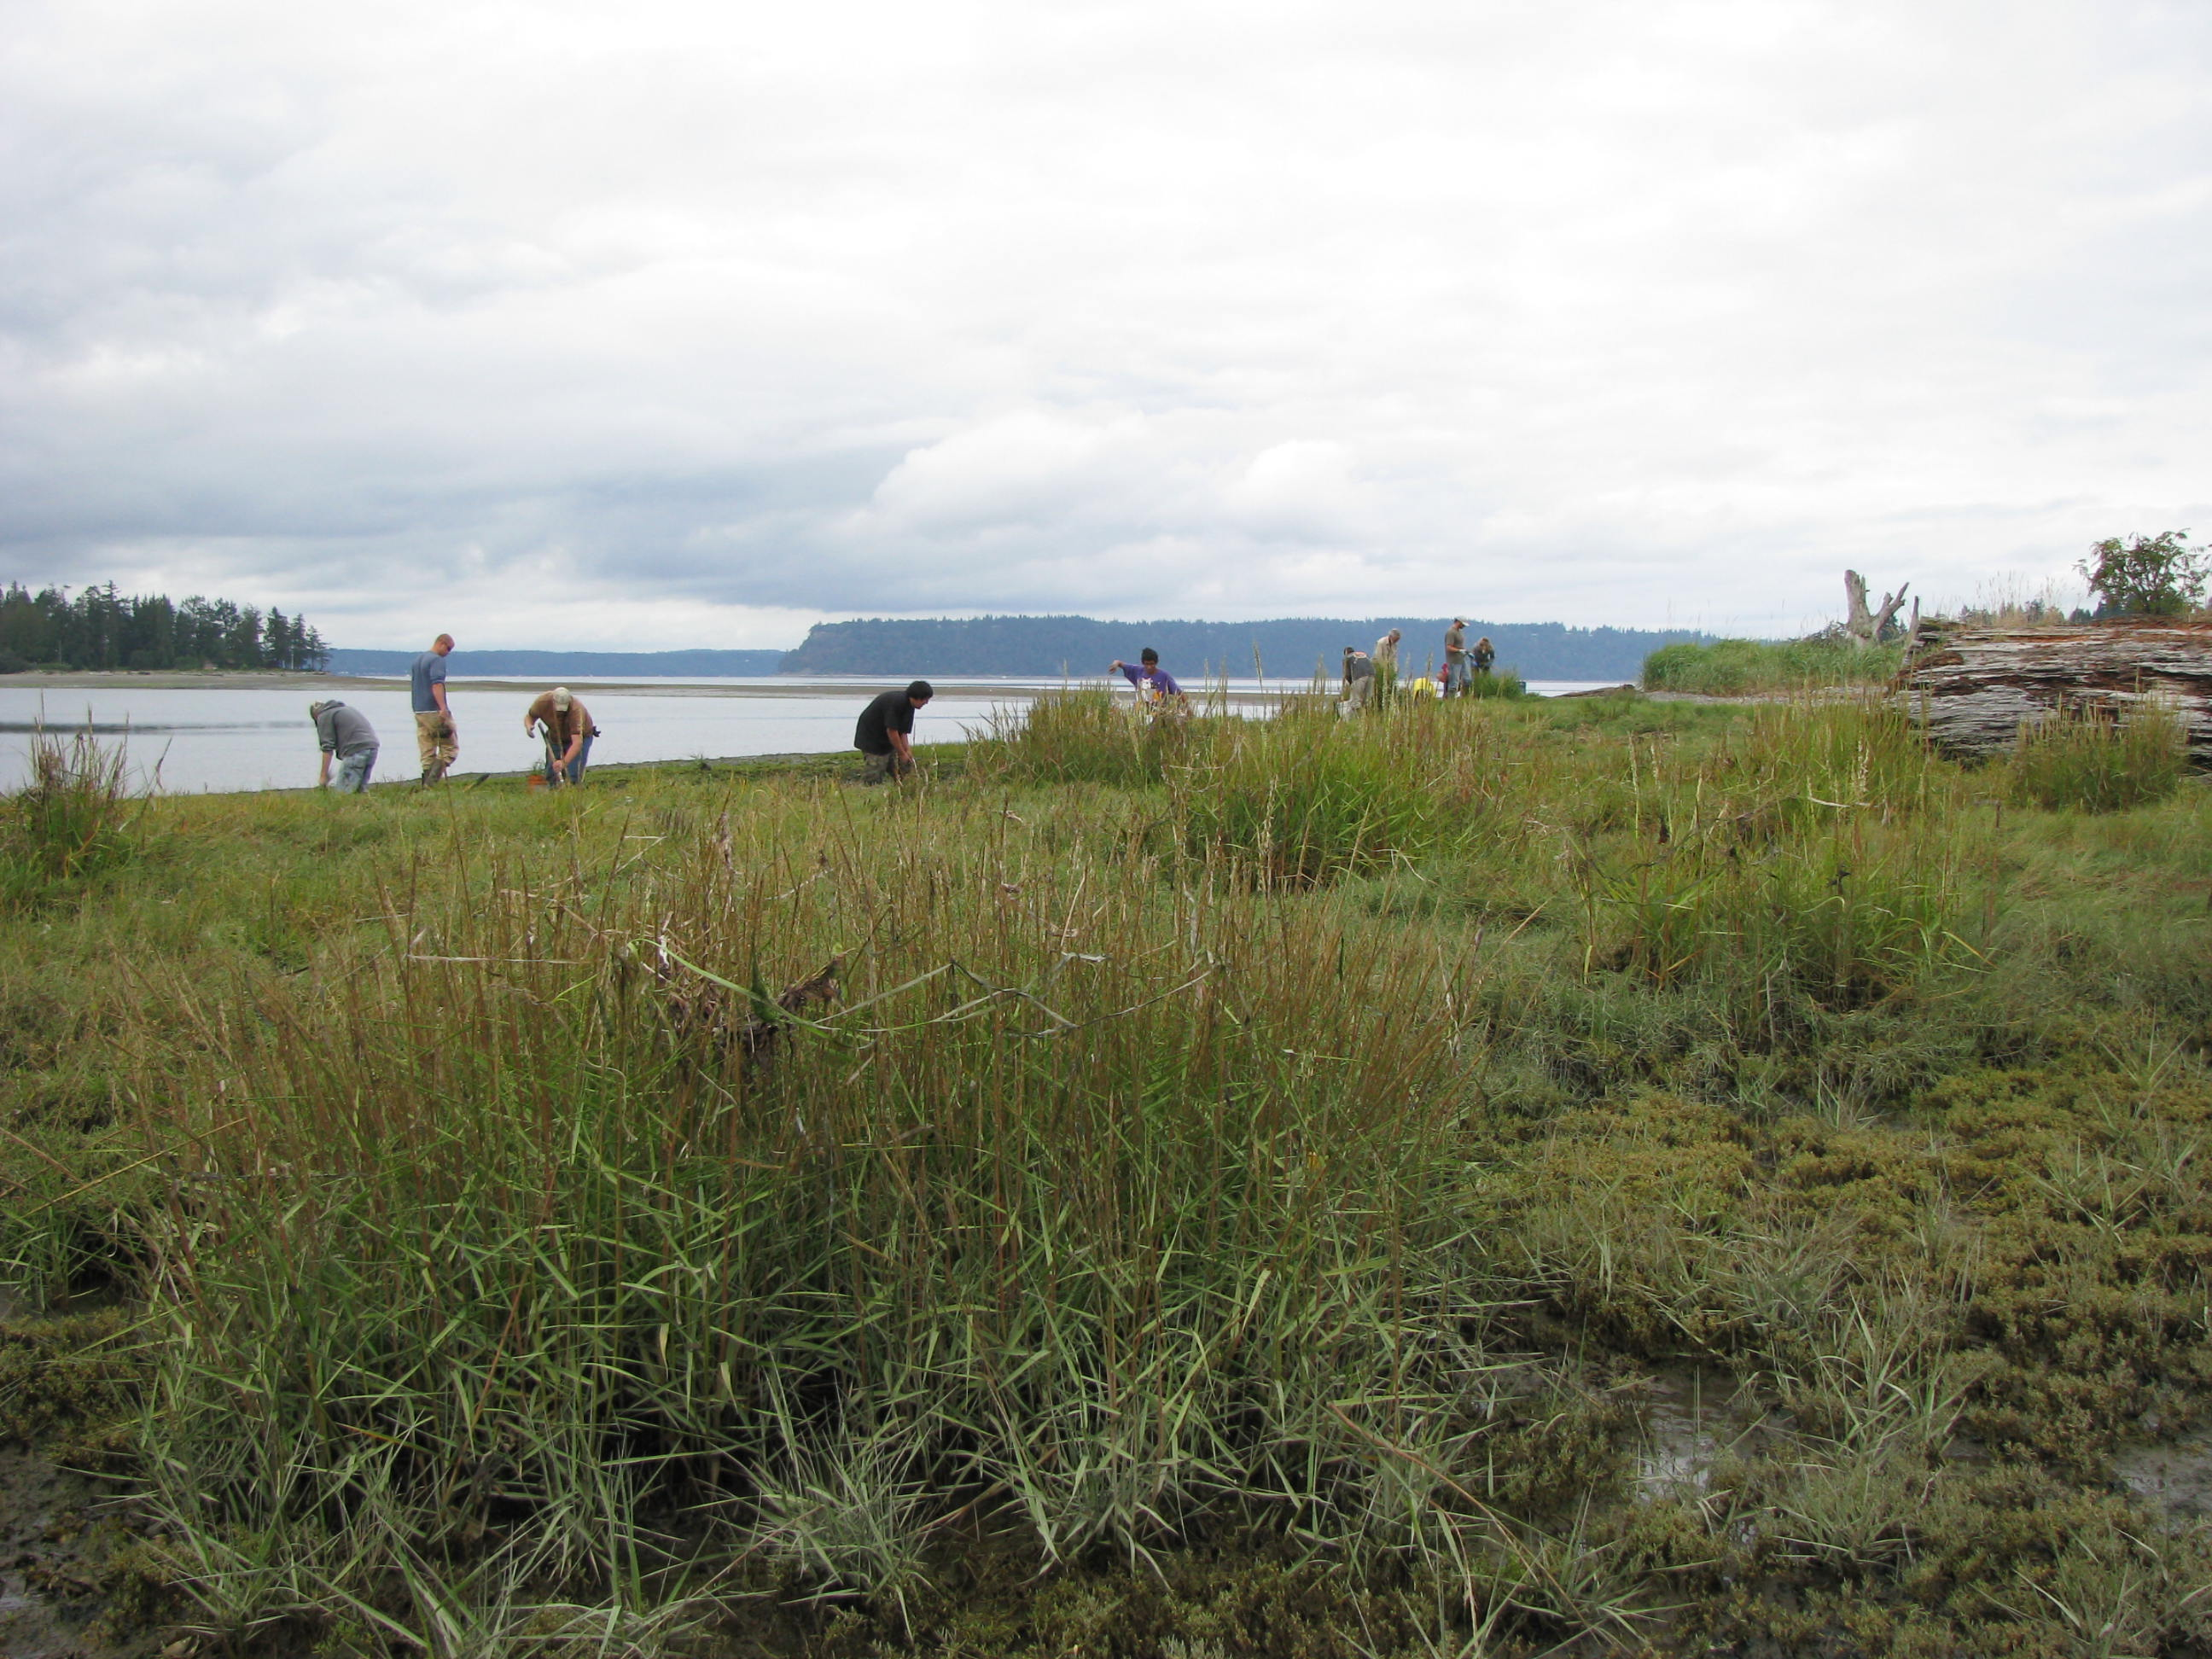 2014 Spartina treatment season begins next month in Grays Harbor